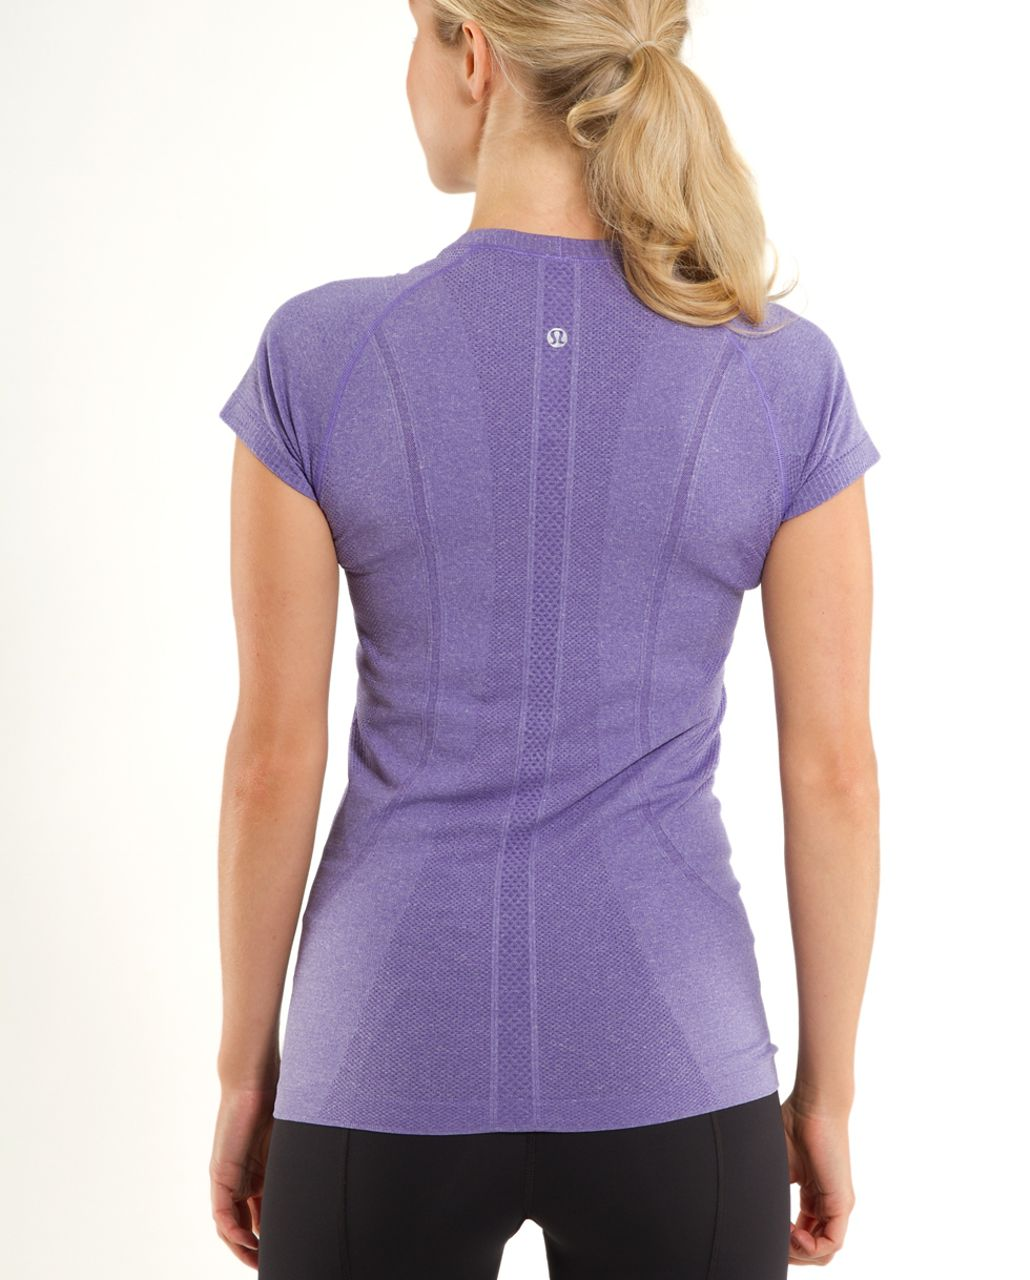 Lululemon Run:  Swiftly Tech Short Sleeve - Persian Purple